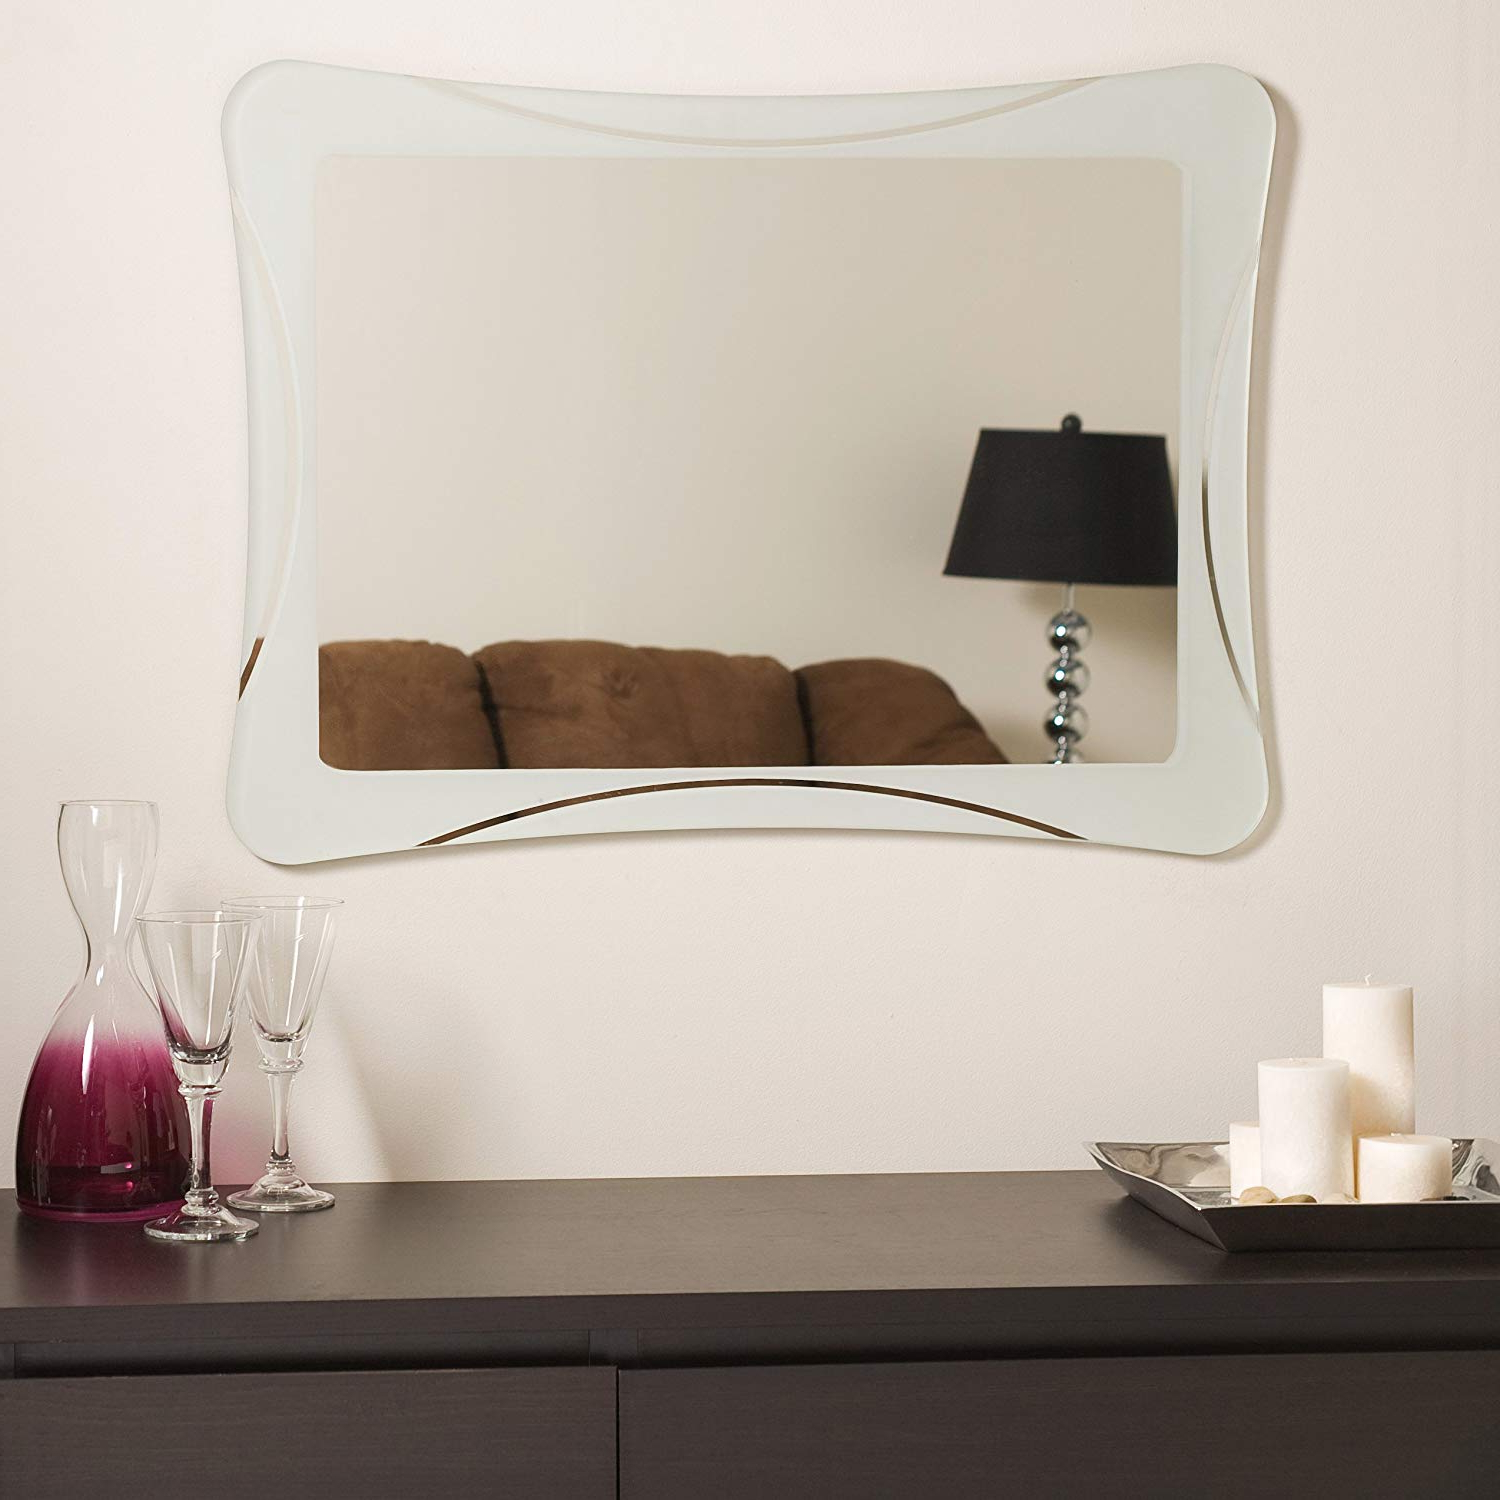 Amazon: Decor Wonderland Frameless Shapes Mirror: Home & Kitchen With Widely Used Logan Frameless Wall Mirrors (View 2 of 20)